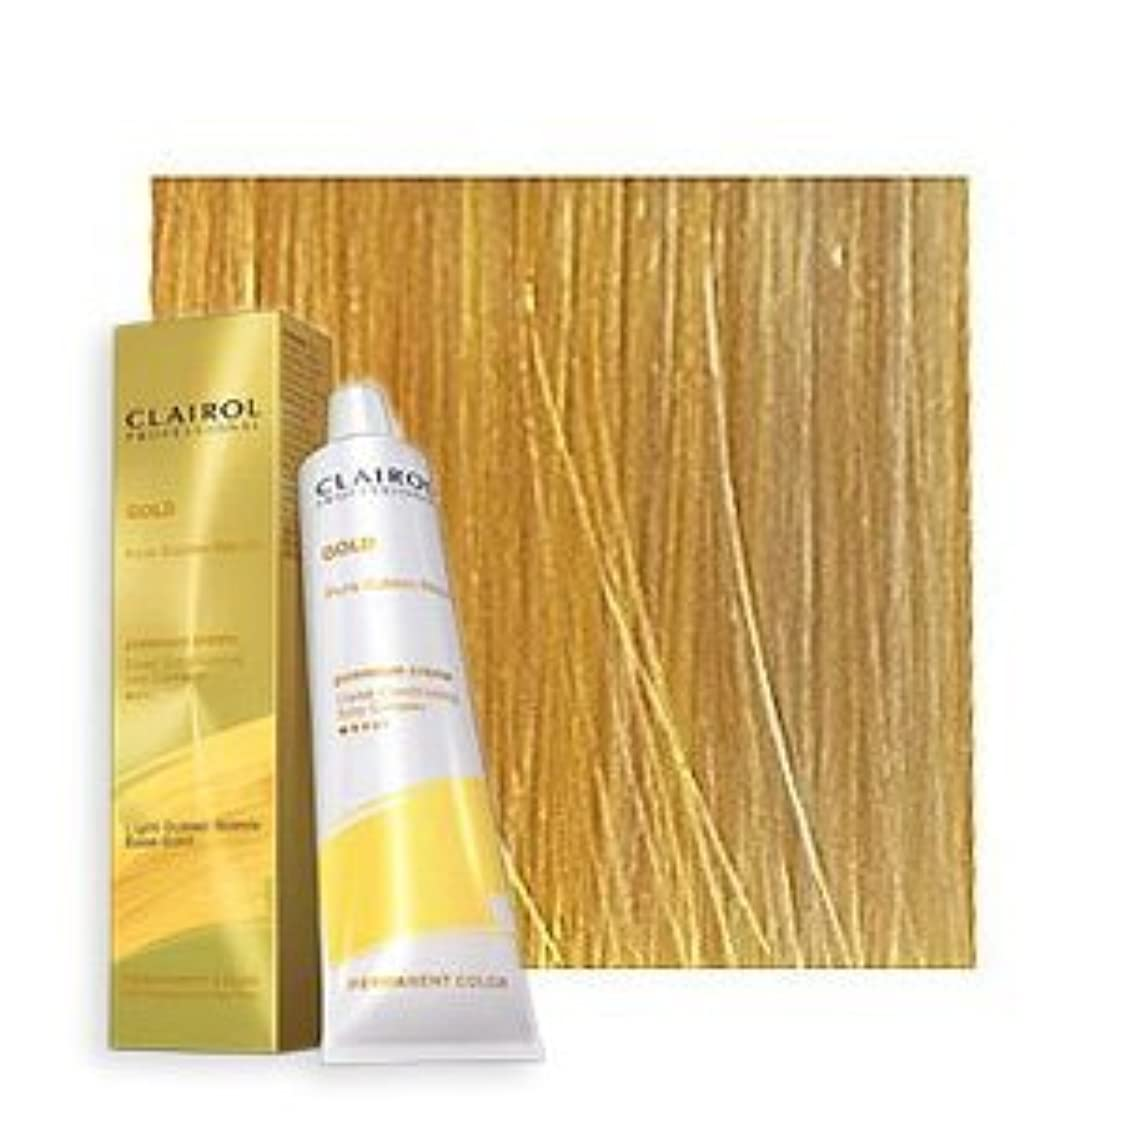 習熟度海洋のスリップClairol Professional - SOY4PLEX - Lightest Golden Blonde 10G - 2 oz / 57 g